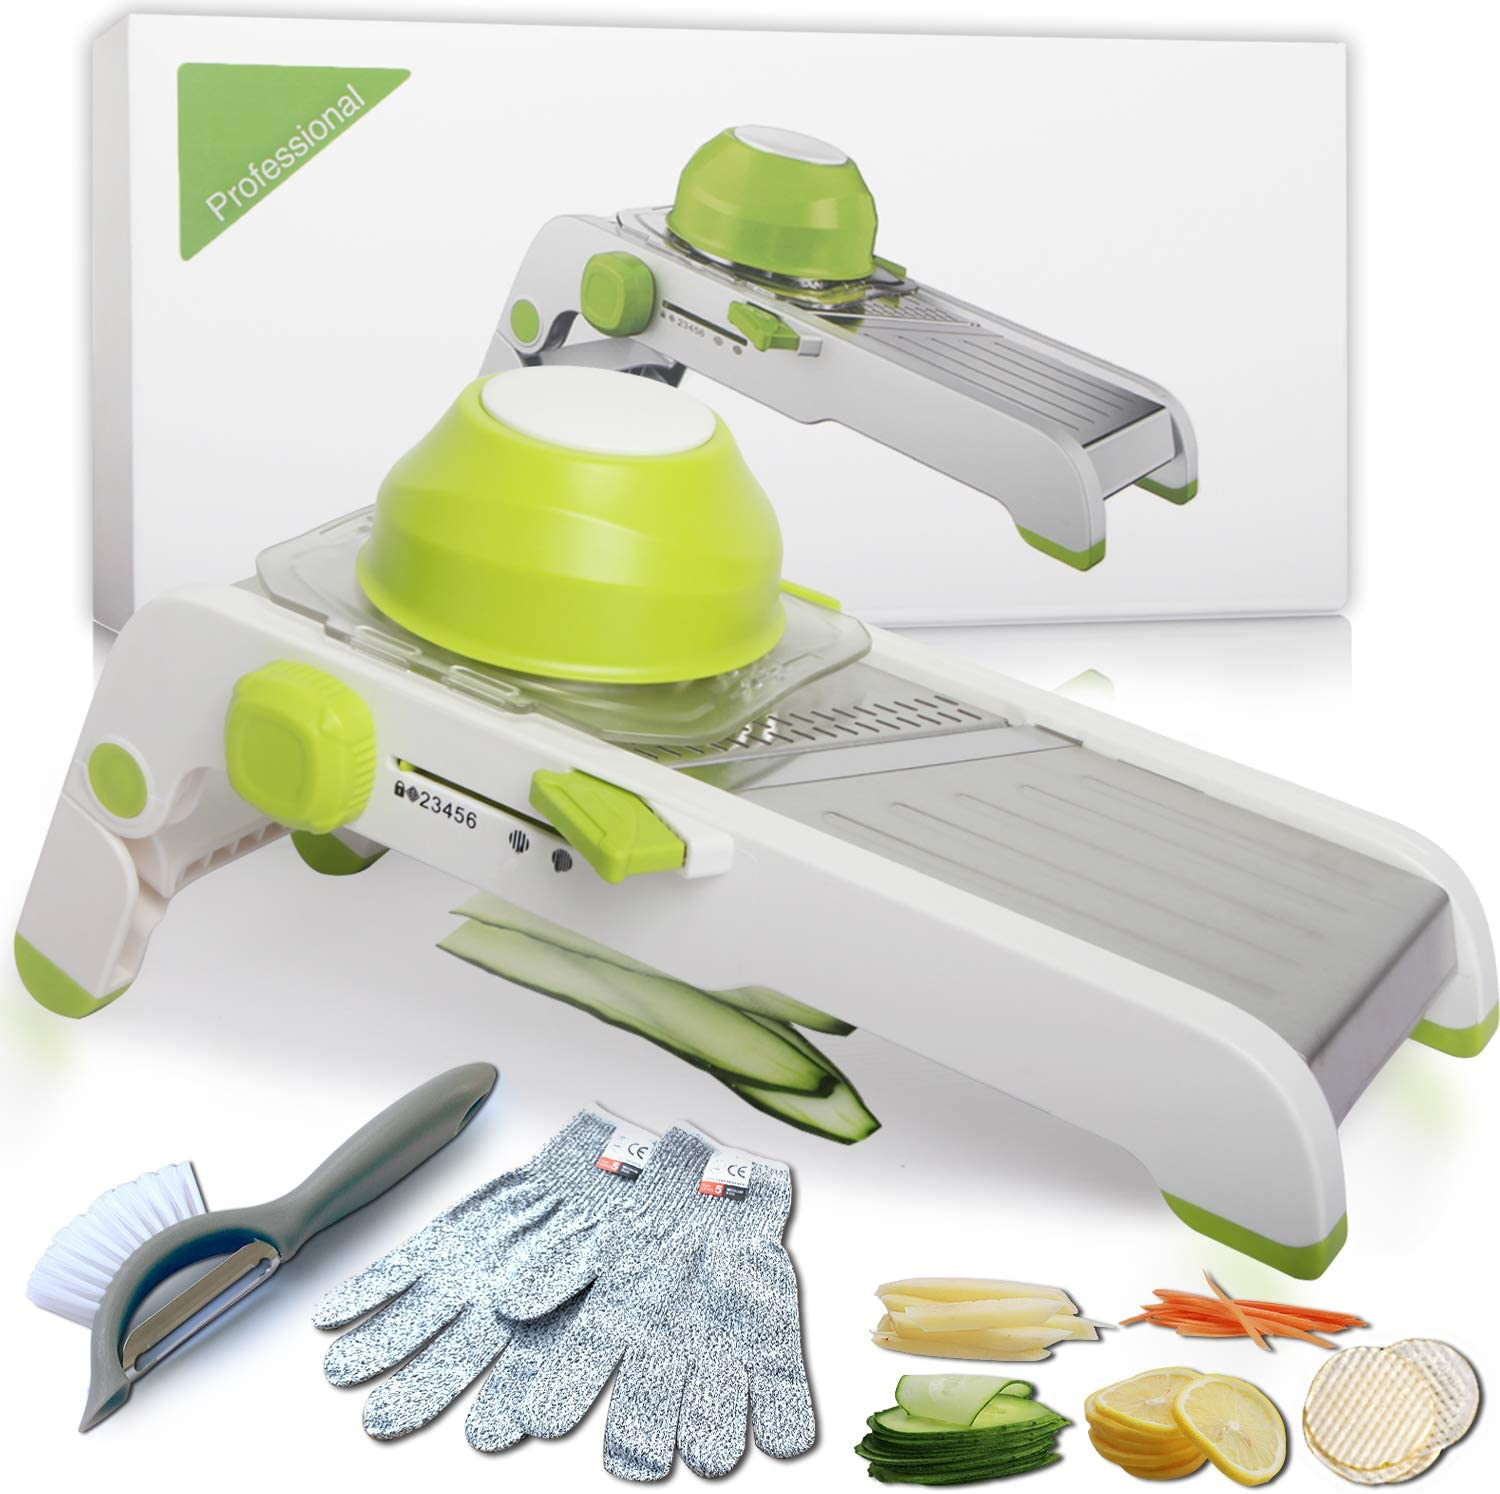 Kitchen Potato Slicer, Adjustable Stainless Steel Safety mandoline Slicer for Vegetable Foods Waffle Fried Patato Chips Onion Tamato with Blade Cleaning Brush Peeler and Cut-Resistant Gloves